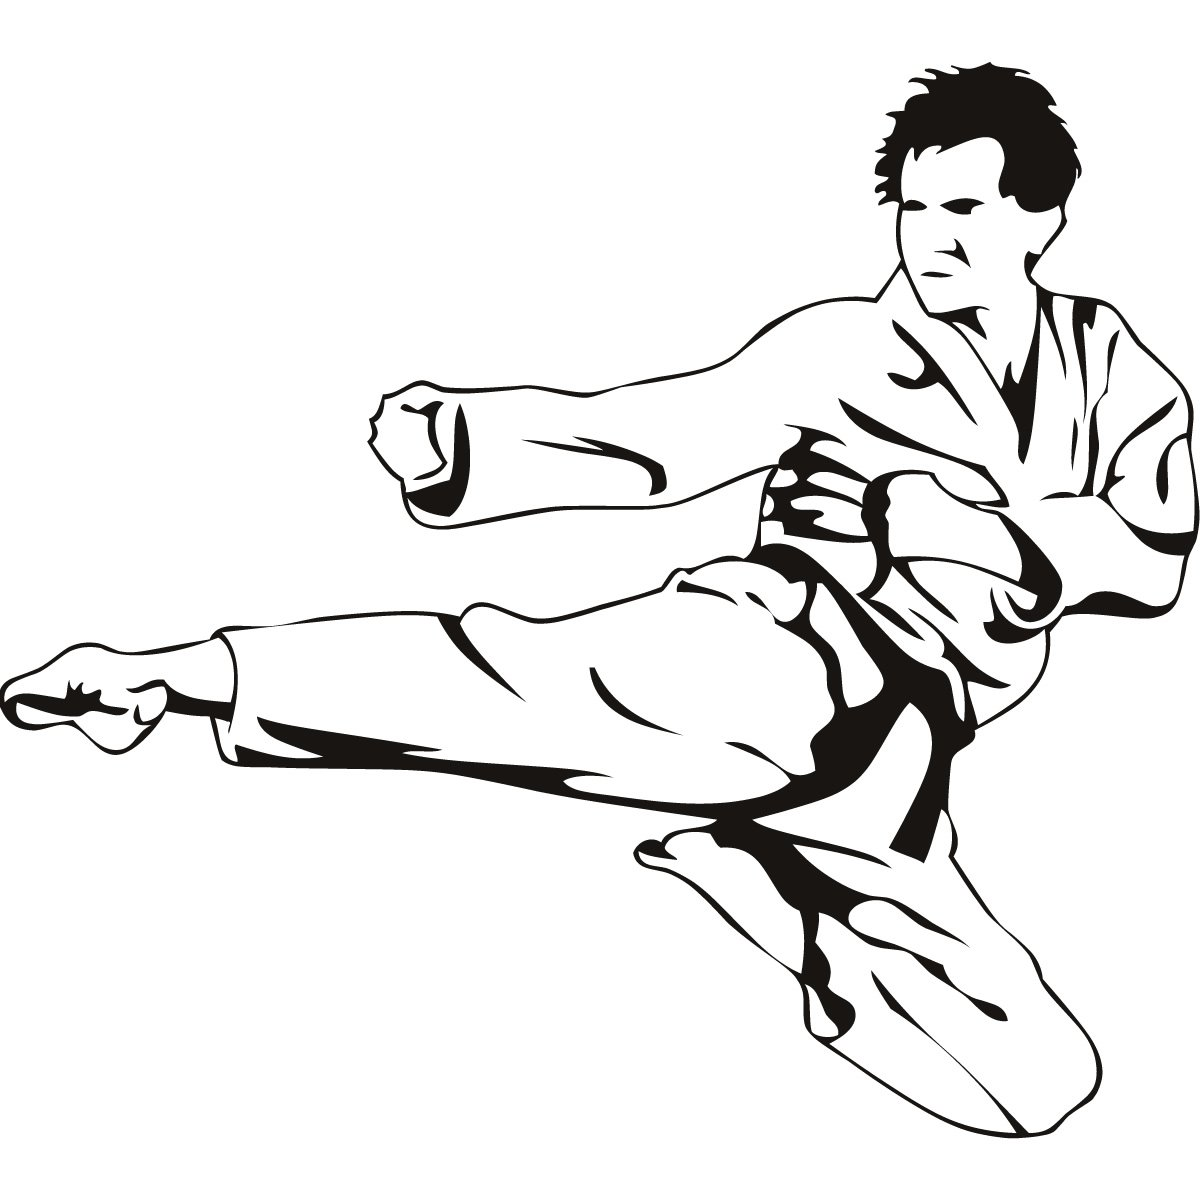 Karate Fighters Drawings